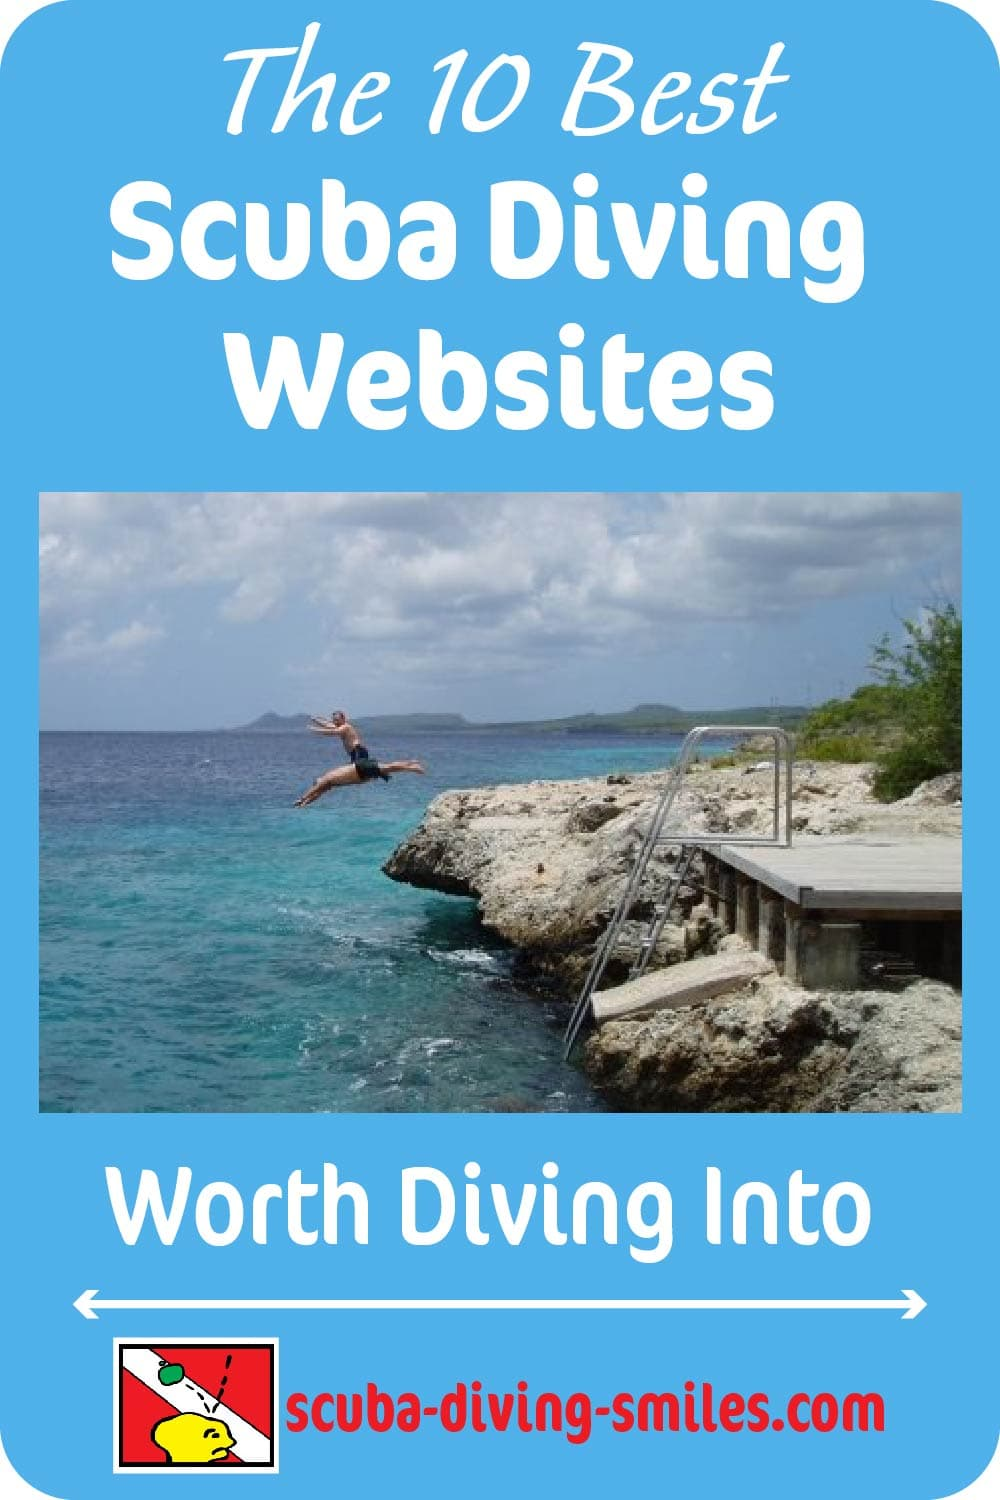 best scuba diving websites graphic